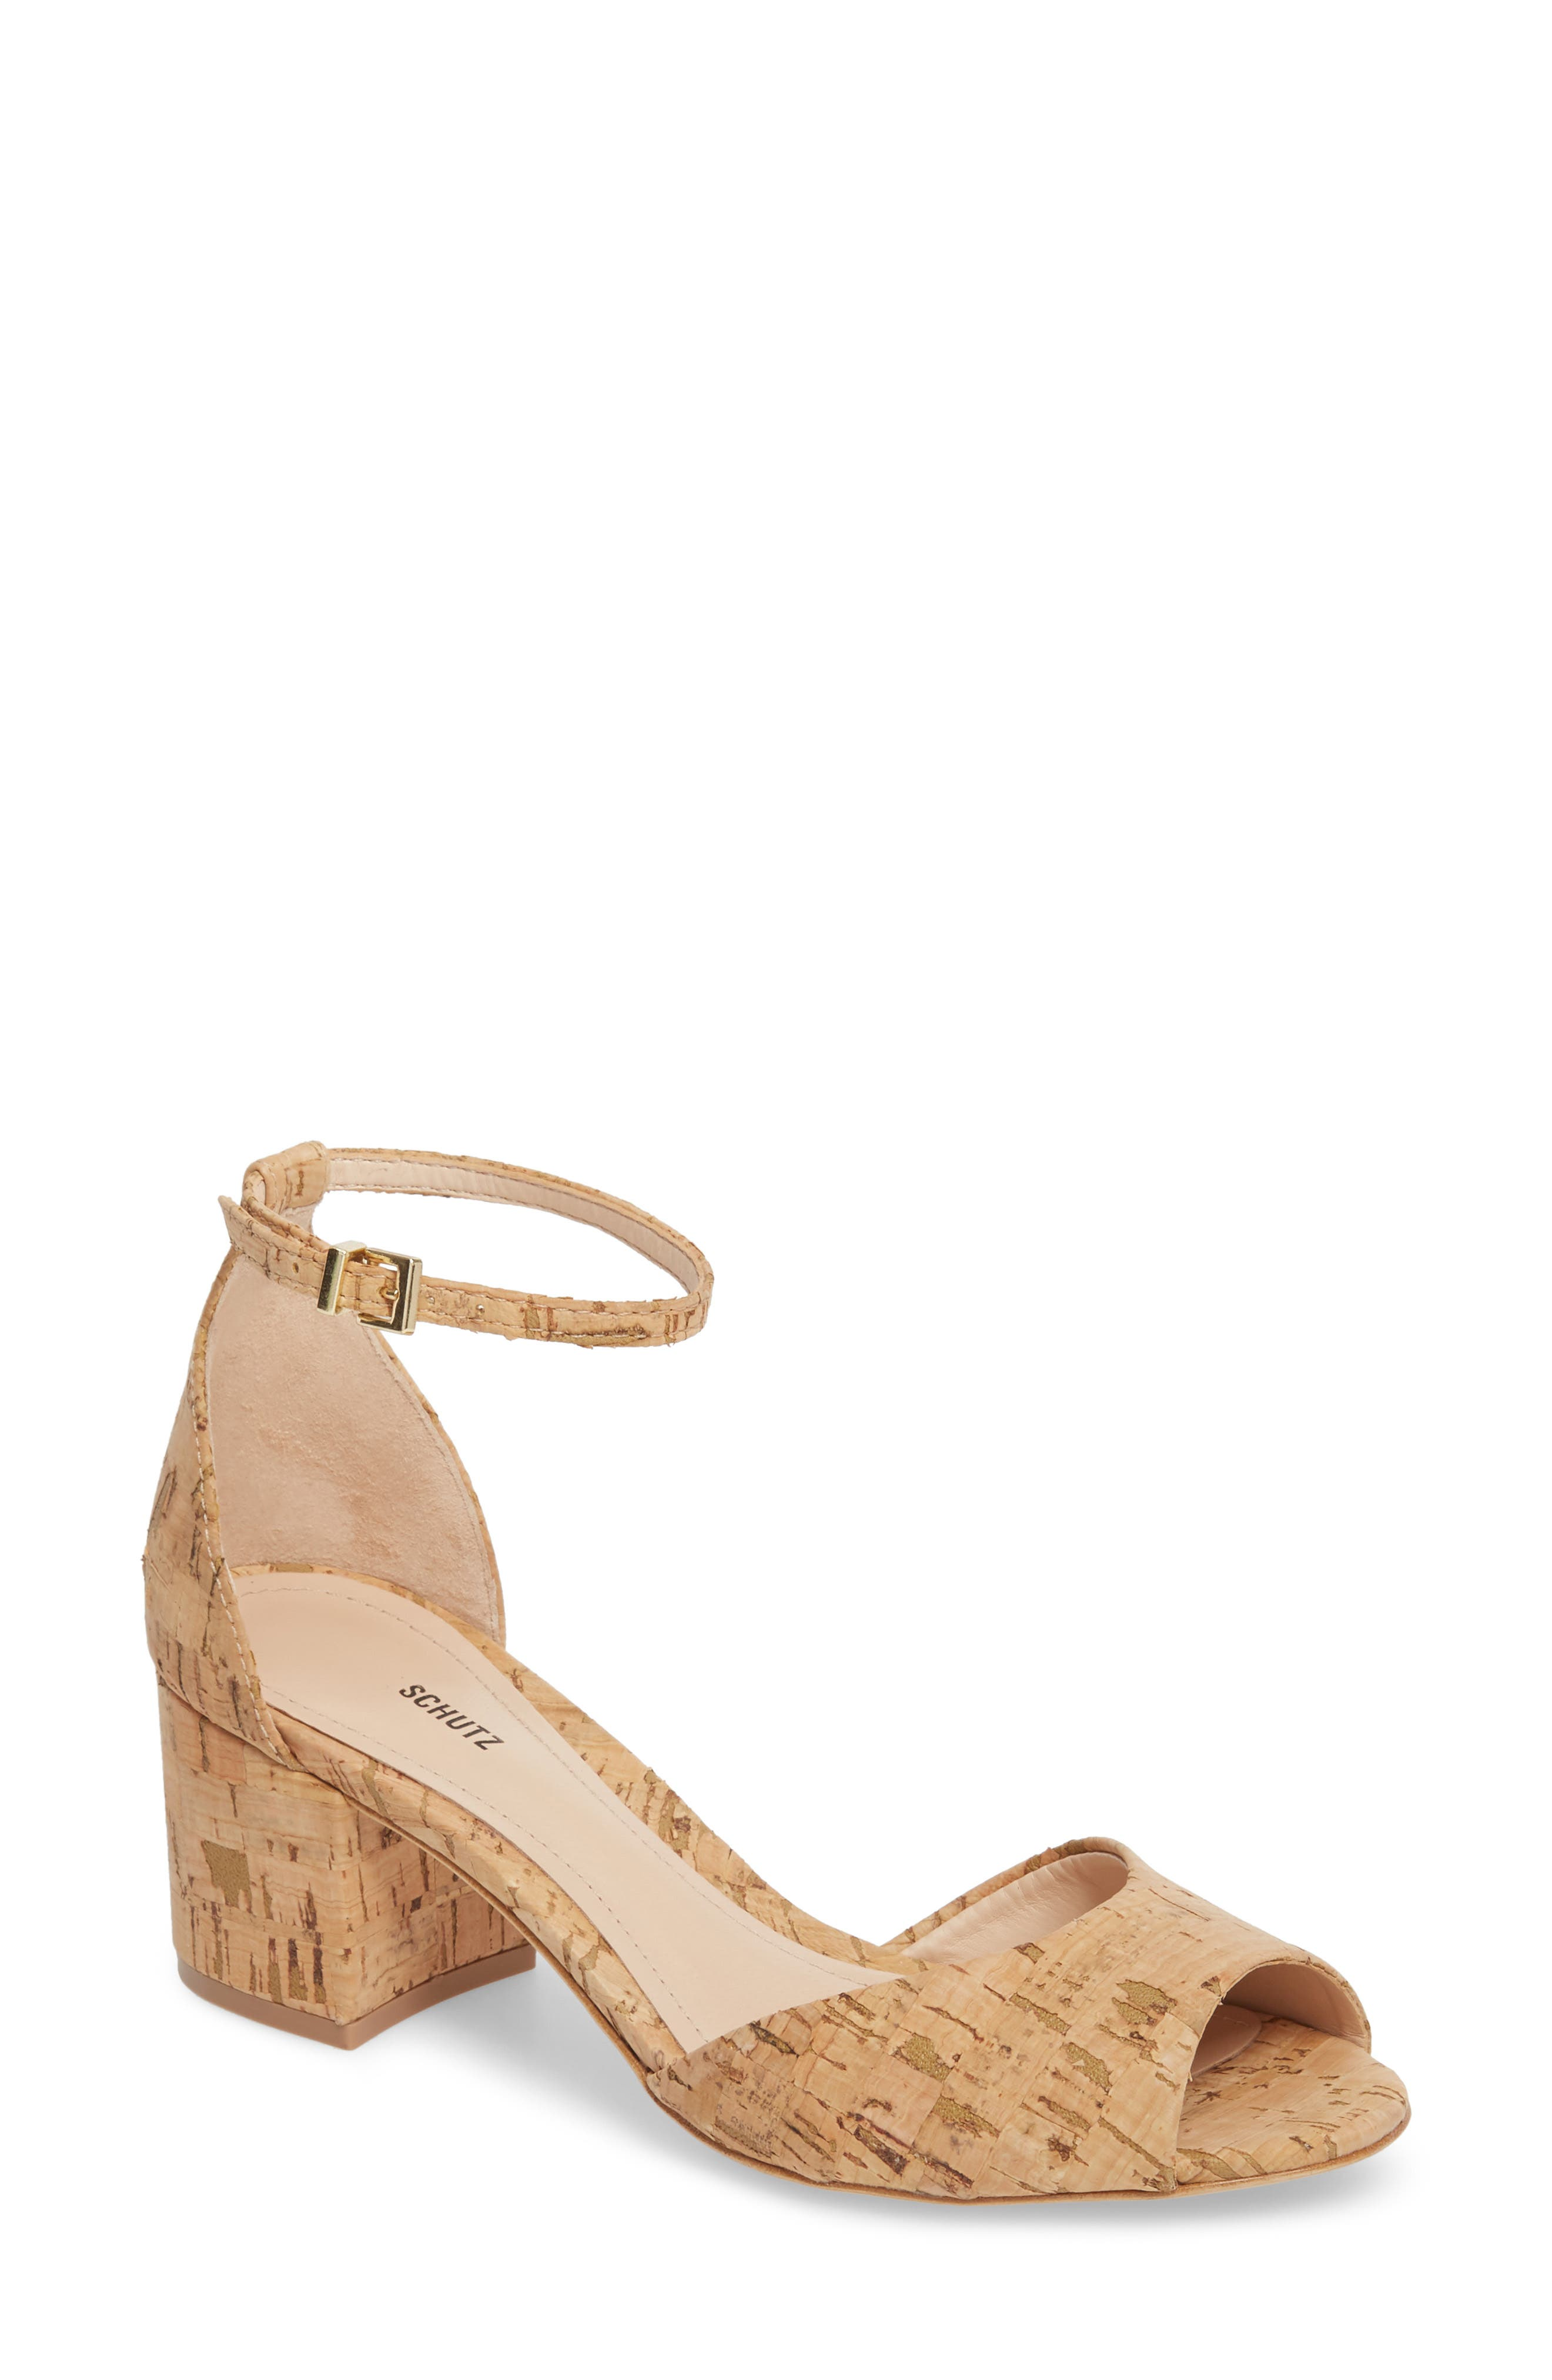 Roama Block Heel Sandal,                             Main thumbnail 1, color,                             Natural